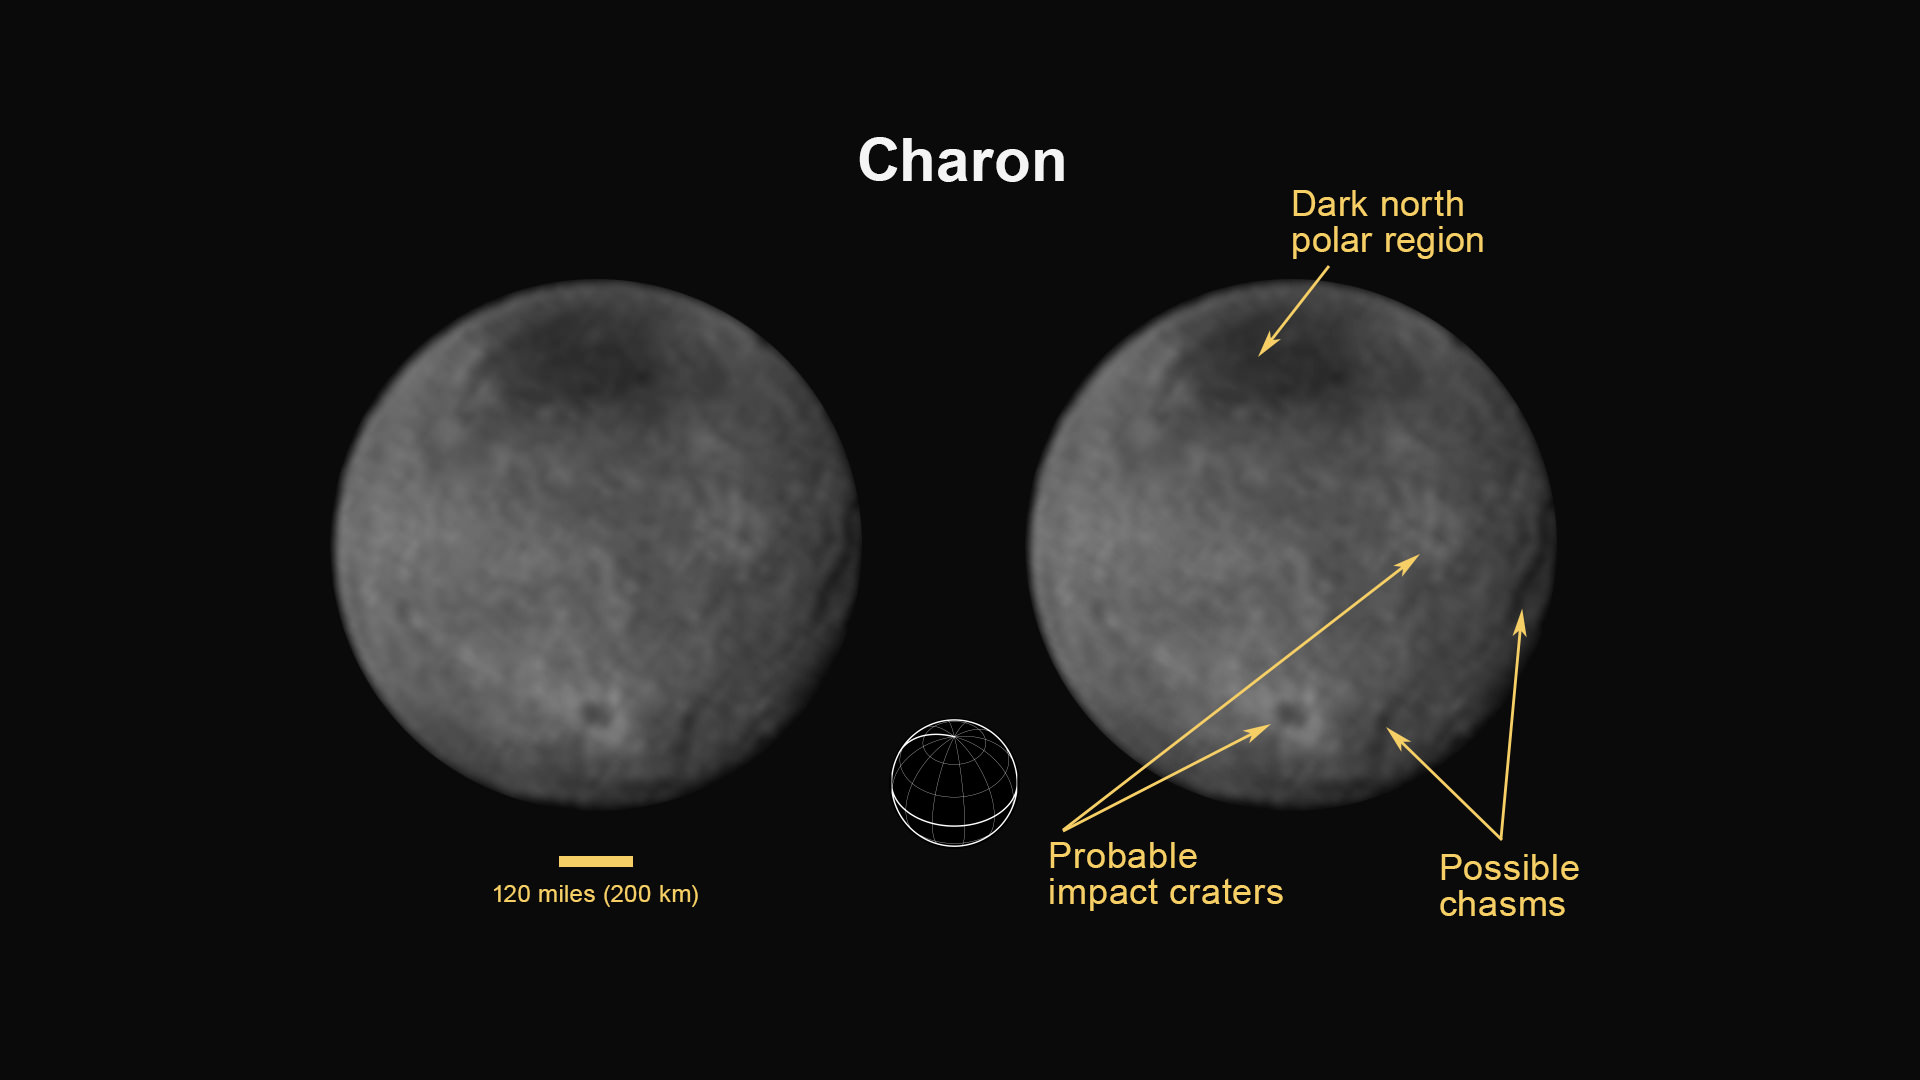 Charon Moon: Mysterious Mountain Revealed In First Close-up Of Pluto's